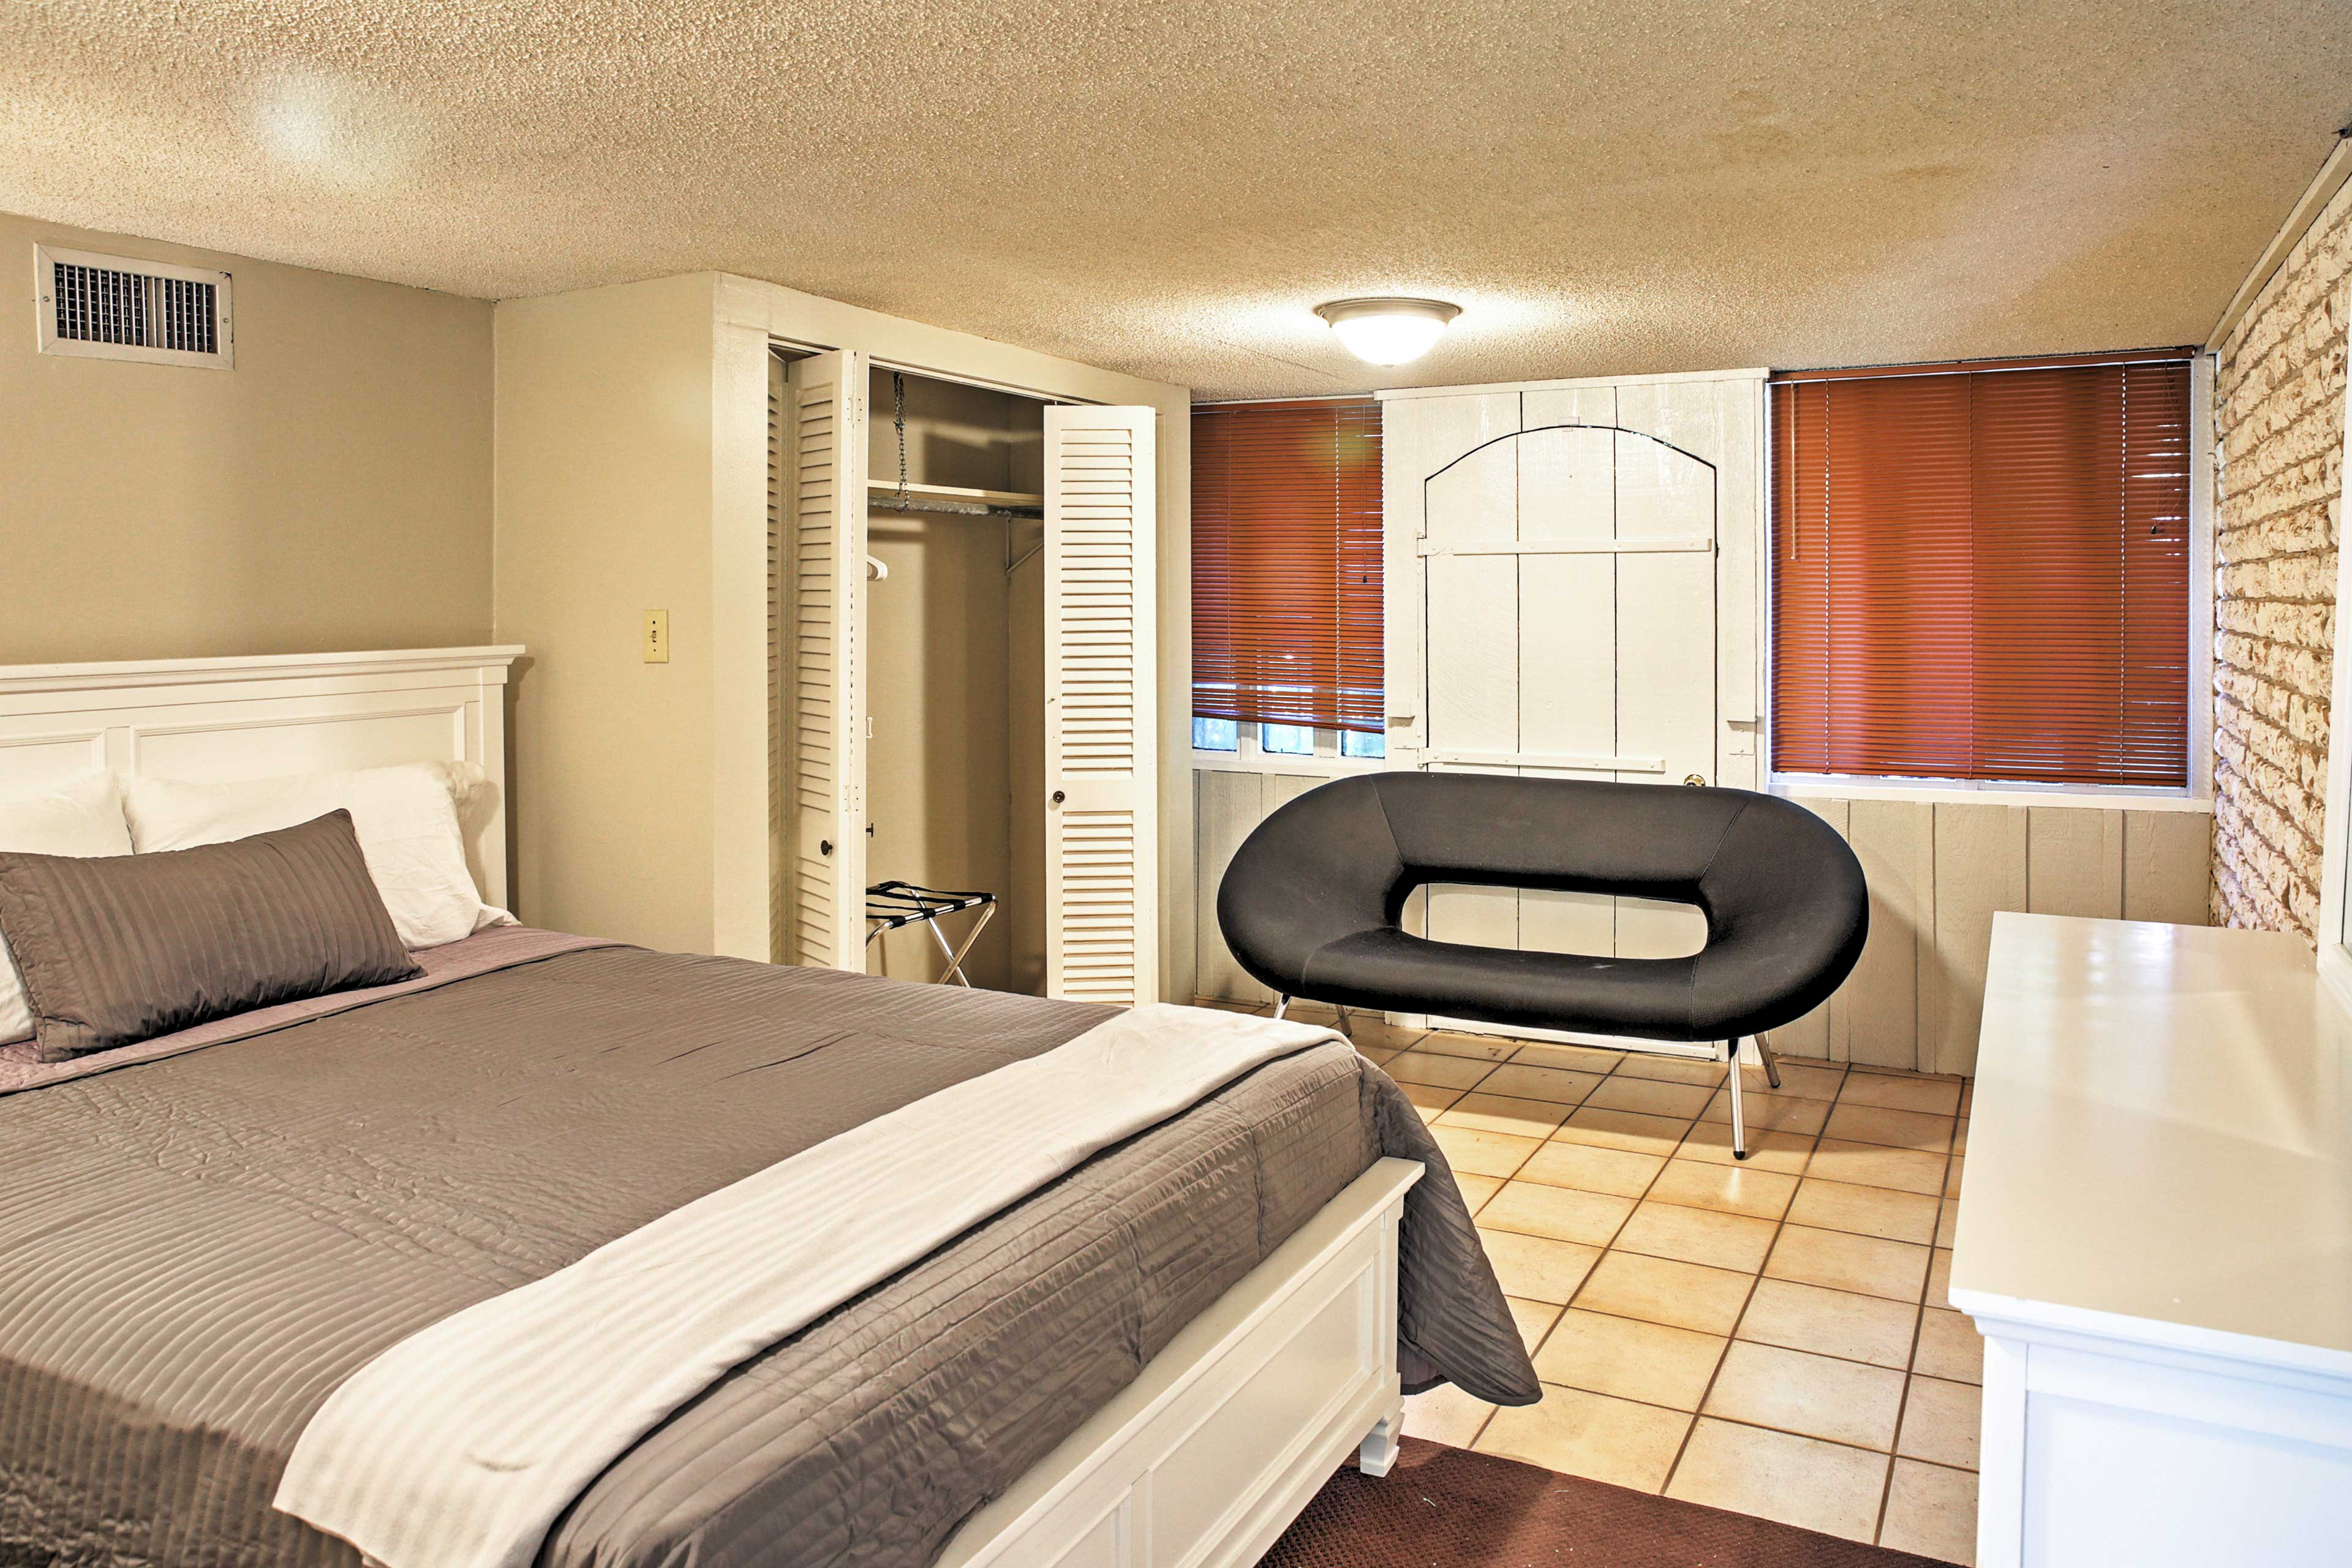 Look forward to great nights of sleep in this plush bed.